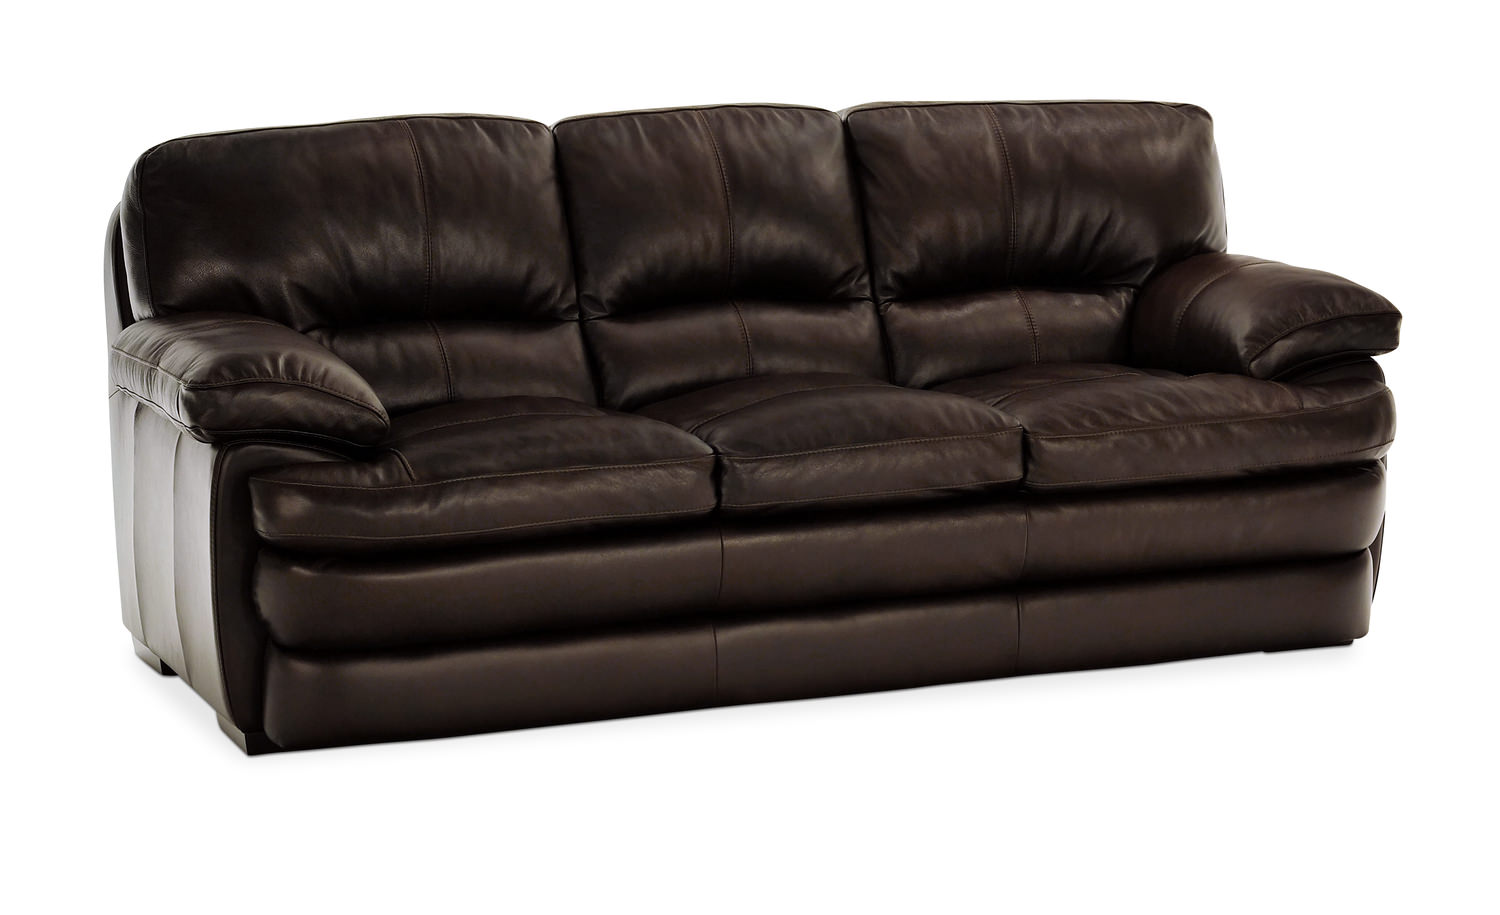 Lancer Leather Sofa